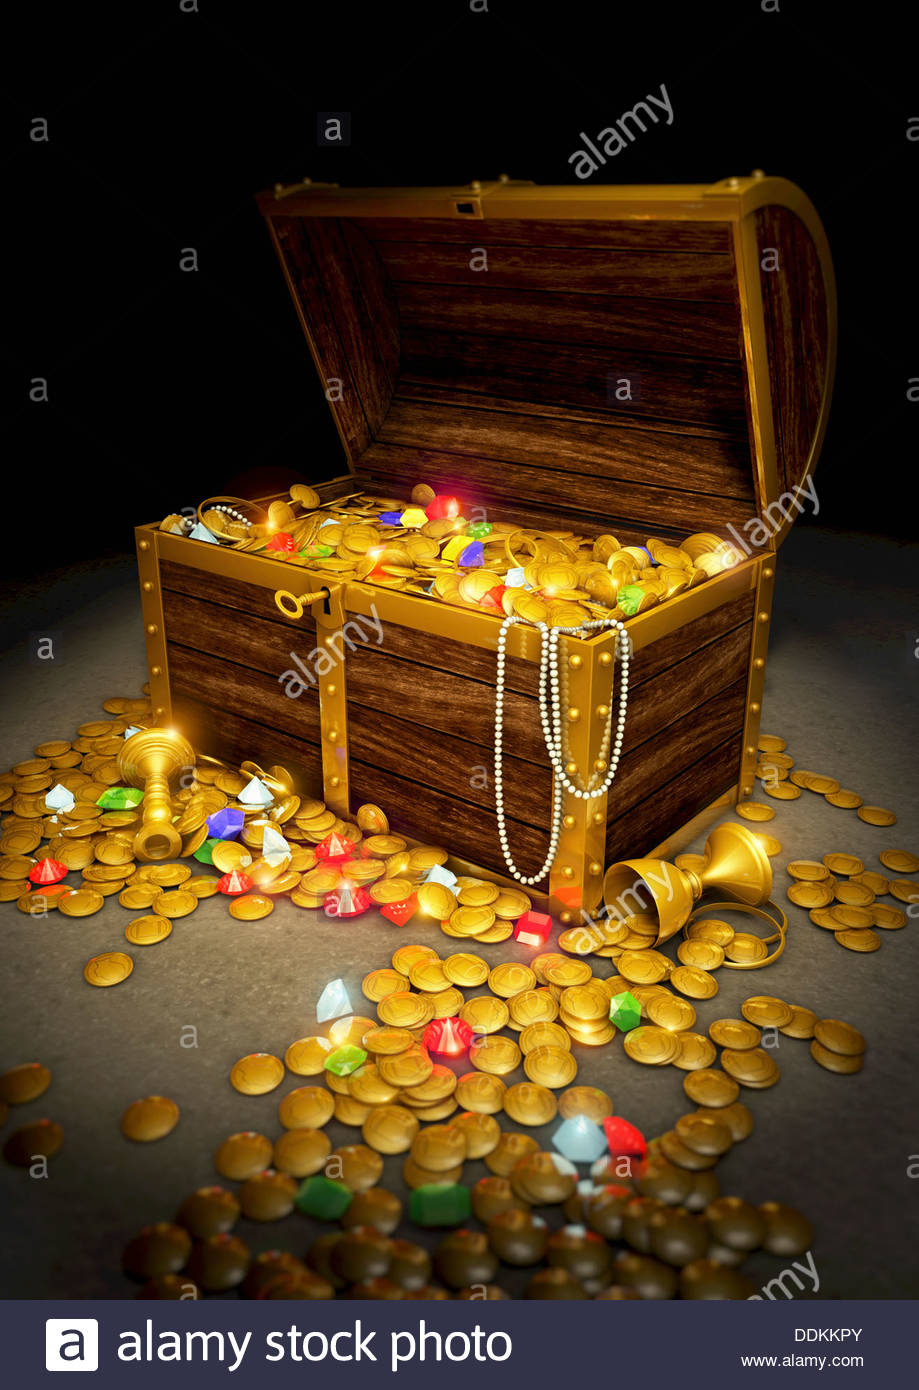 Gold coins and jewels spilling from treasure chest - Stock Image